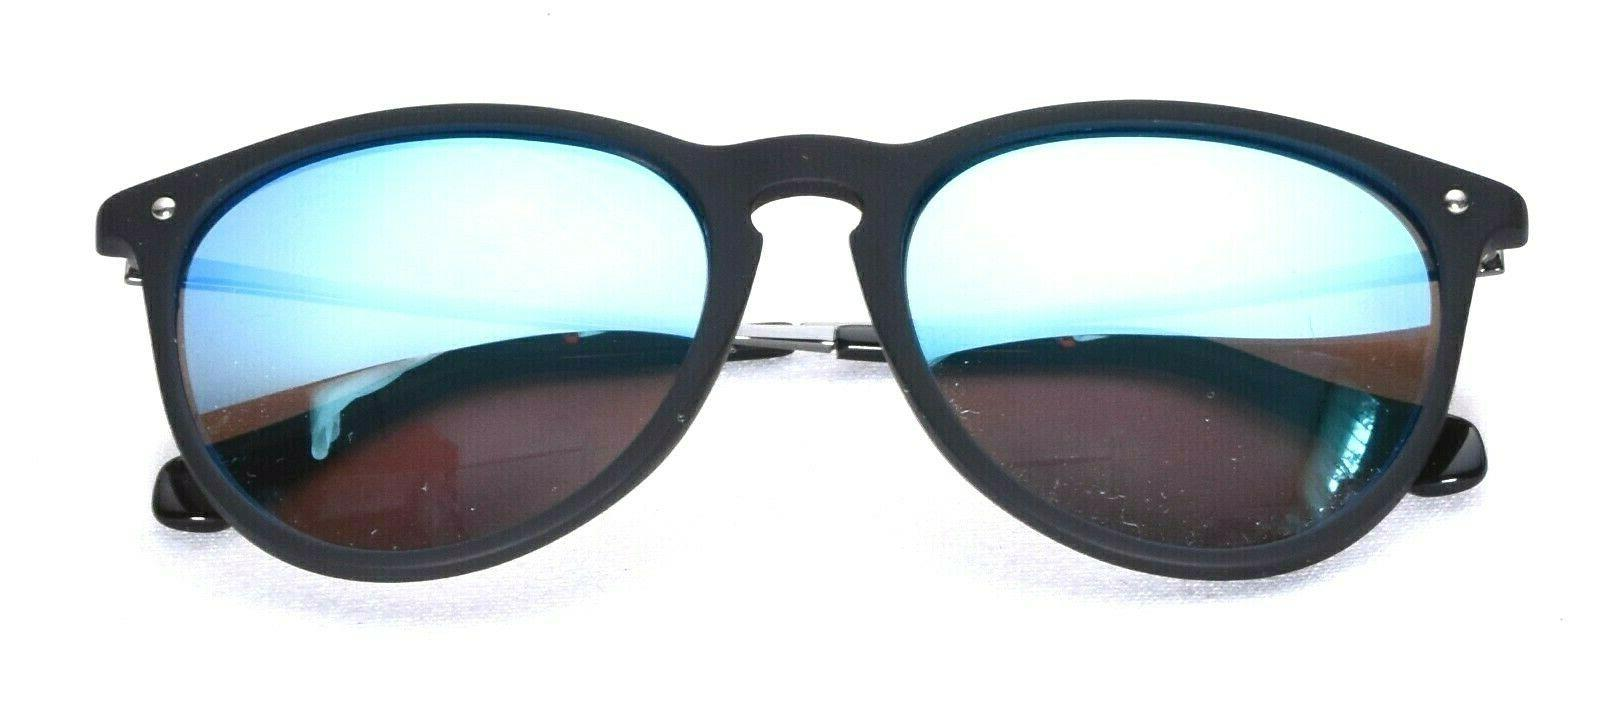 ca5100 c08 polarized black mirrored sunglasses 54